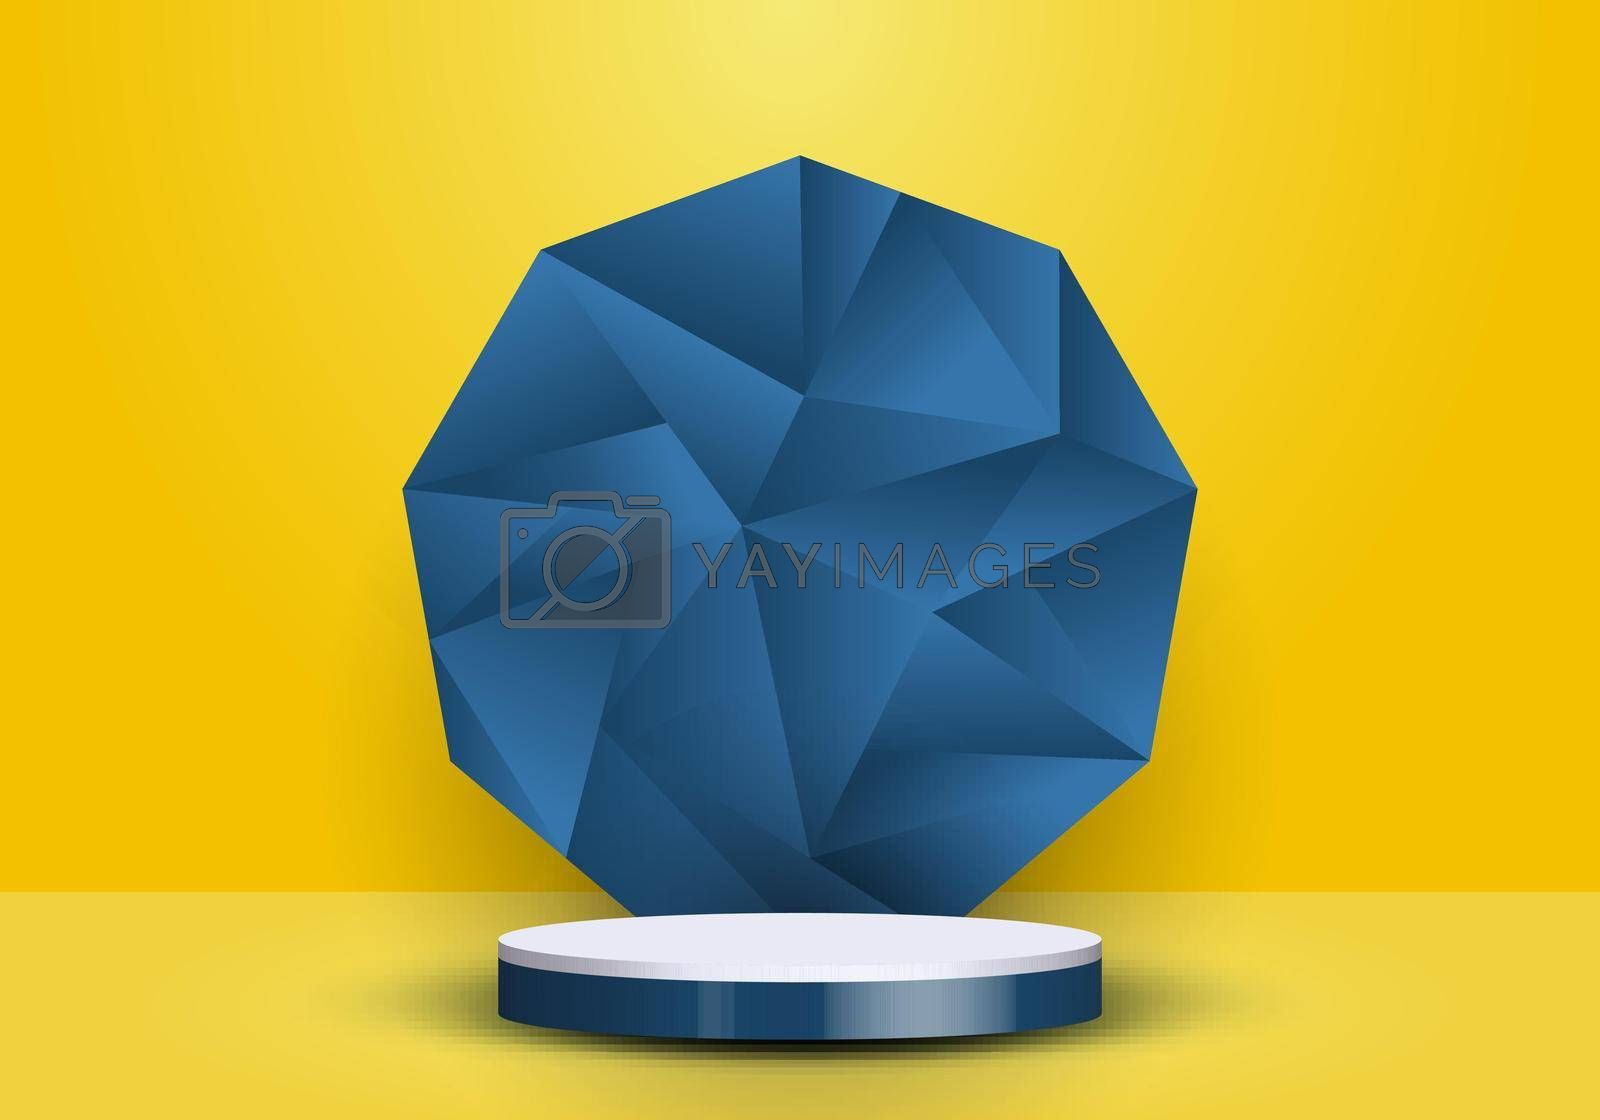 Royalty free image of 3D realistic blue and white cylinder on low polygon backdrop on yellow background by phochi